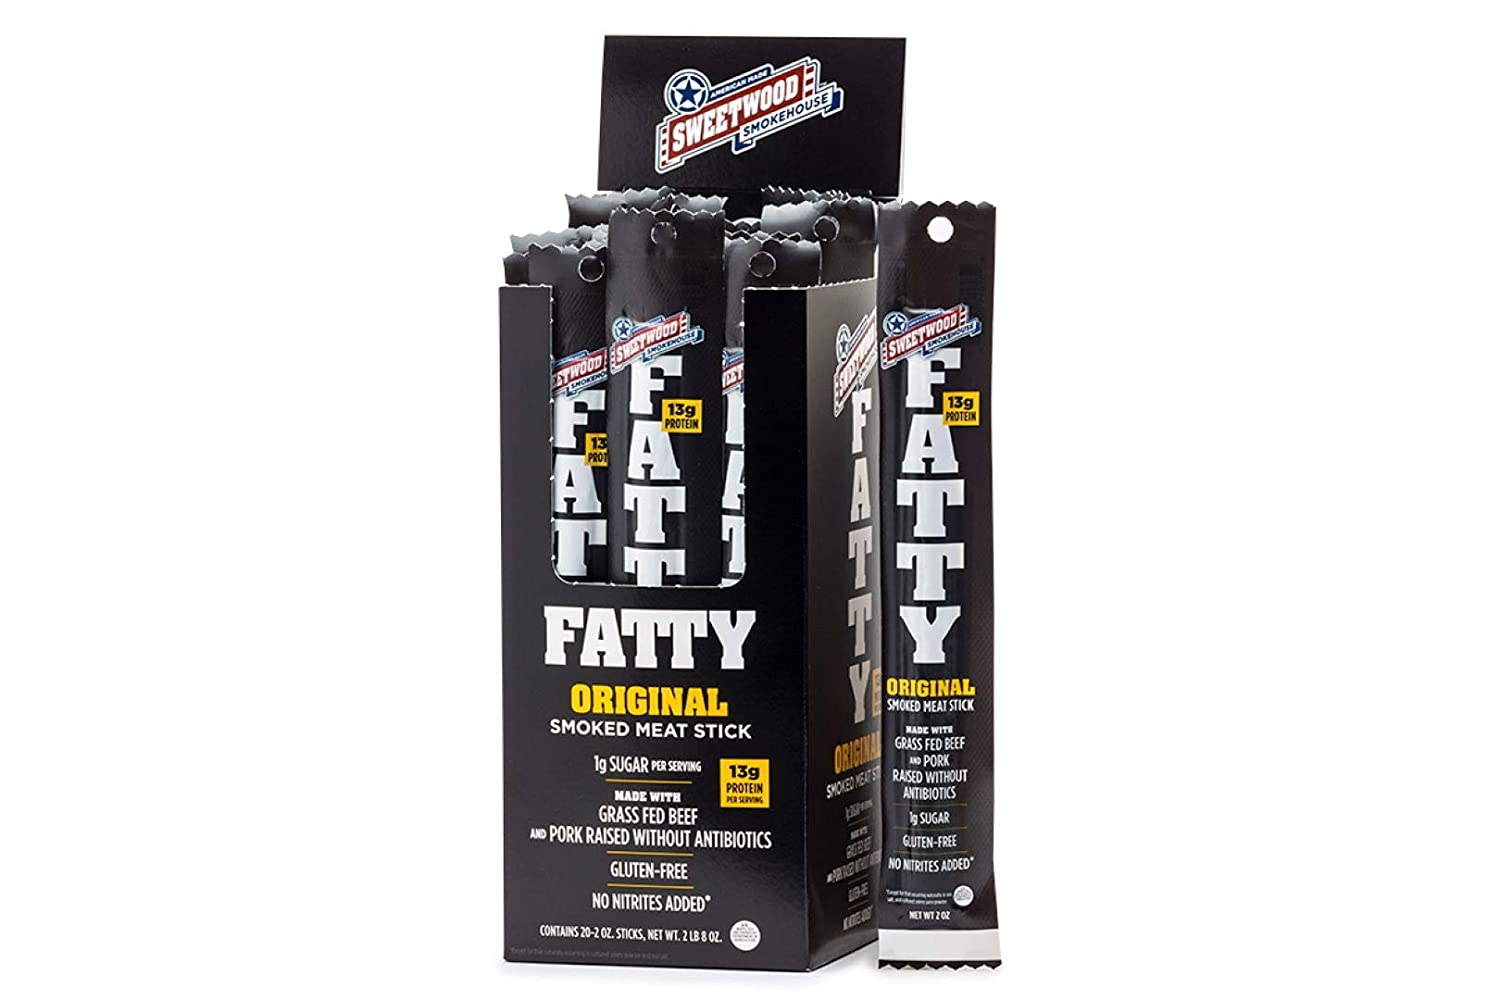 Sweetwood Smokehouse Fatty Meat Stick | Original Flavor | 20 Pack | 2 oz Sticks | USA Grass Fed Beef, Antibiotic Free Pork | Keto, Gluten Free, Slow Smoked Meat Snack | No Nitrites or Added MSG